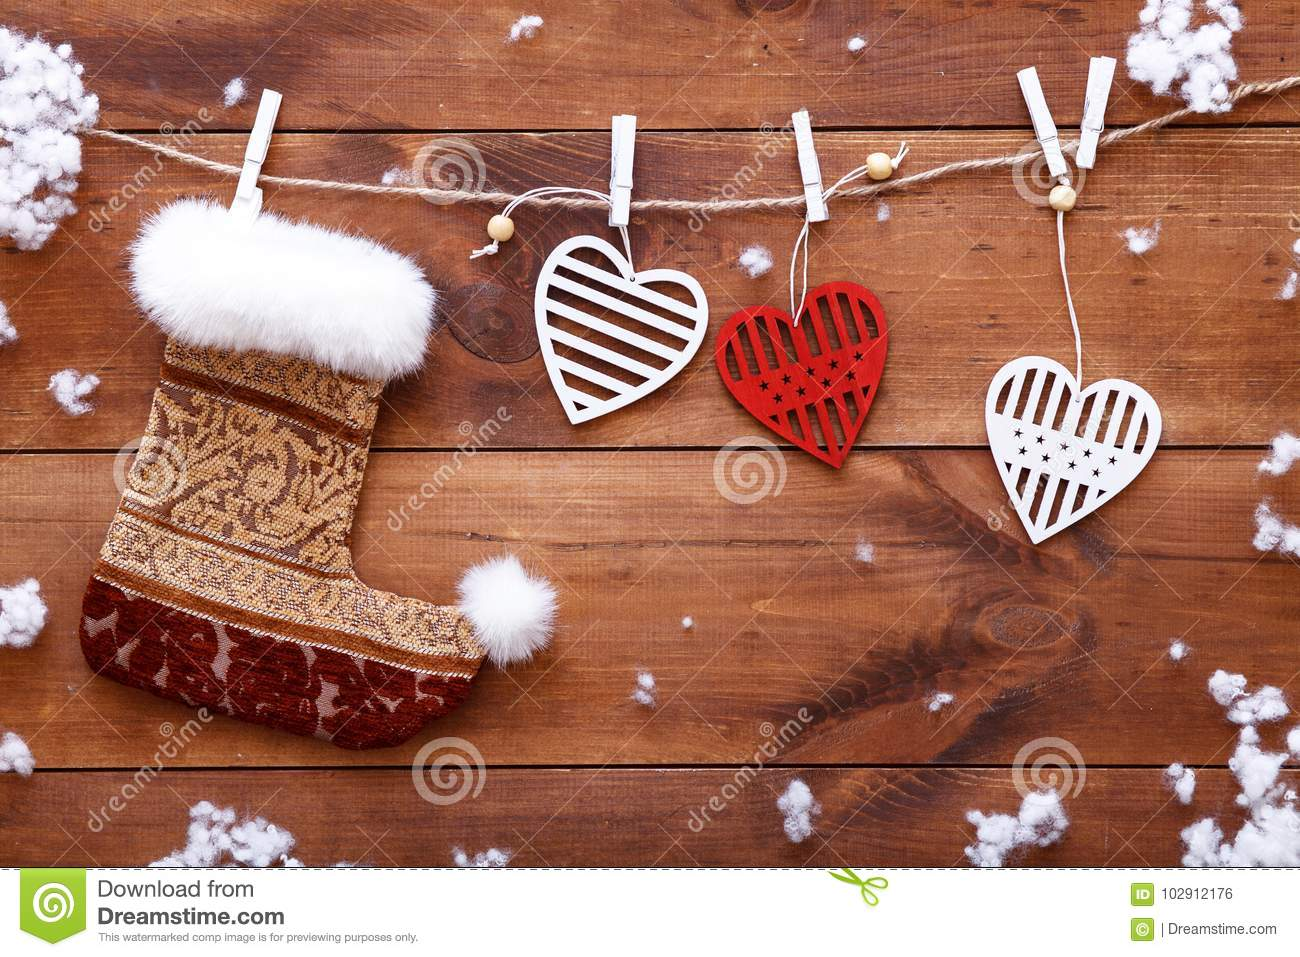 Christmas stocking, white red hearts hanging on brown wooden background, xmas valentines day card, copy space, top view